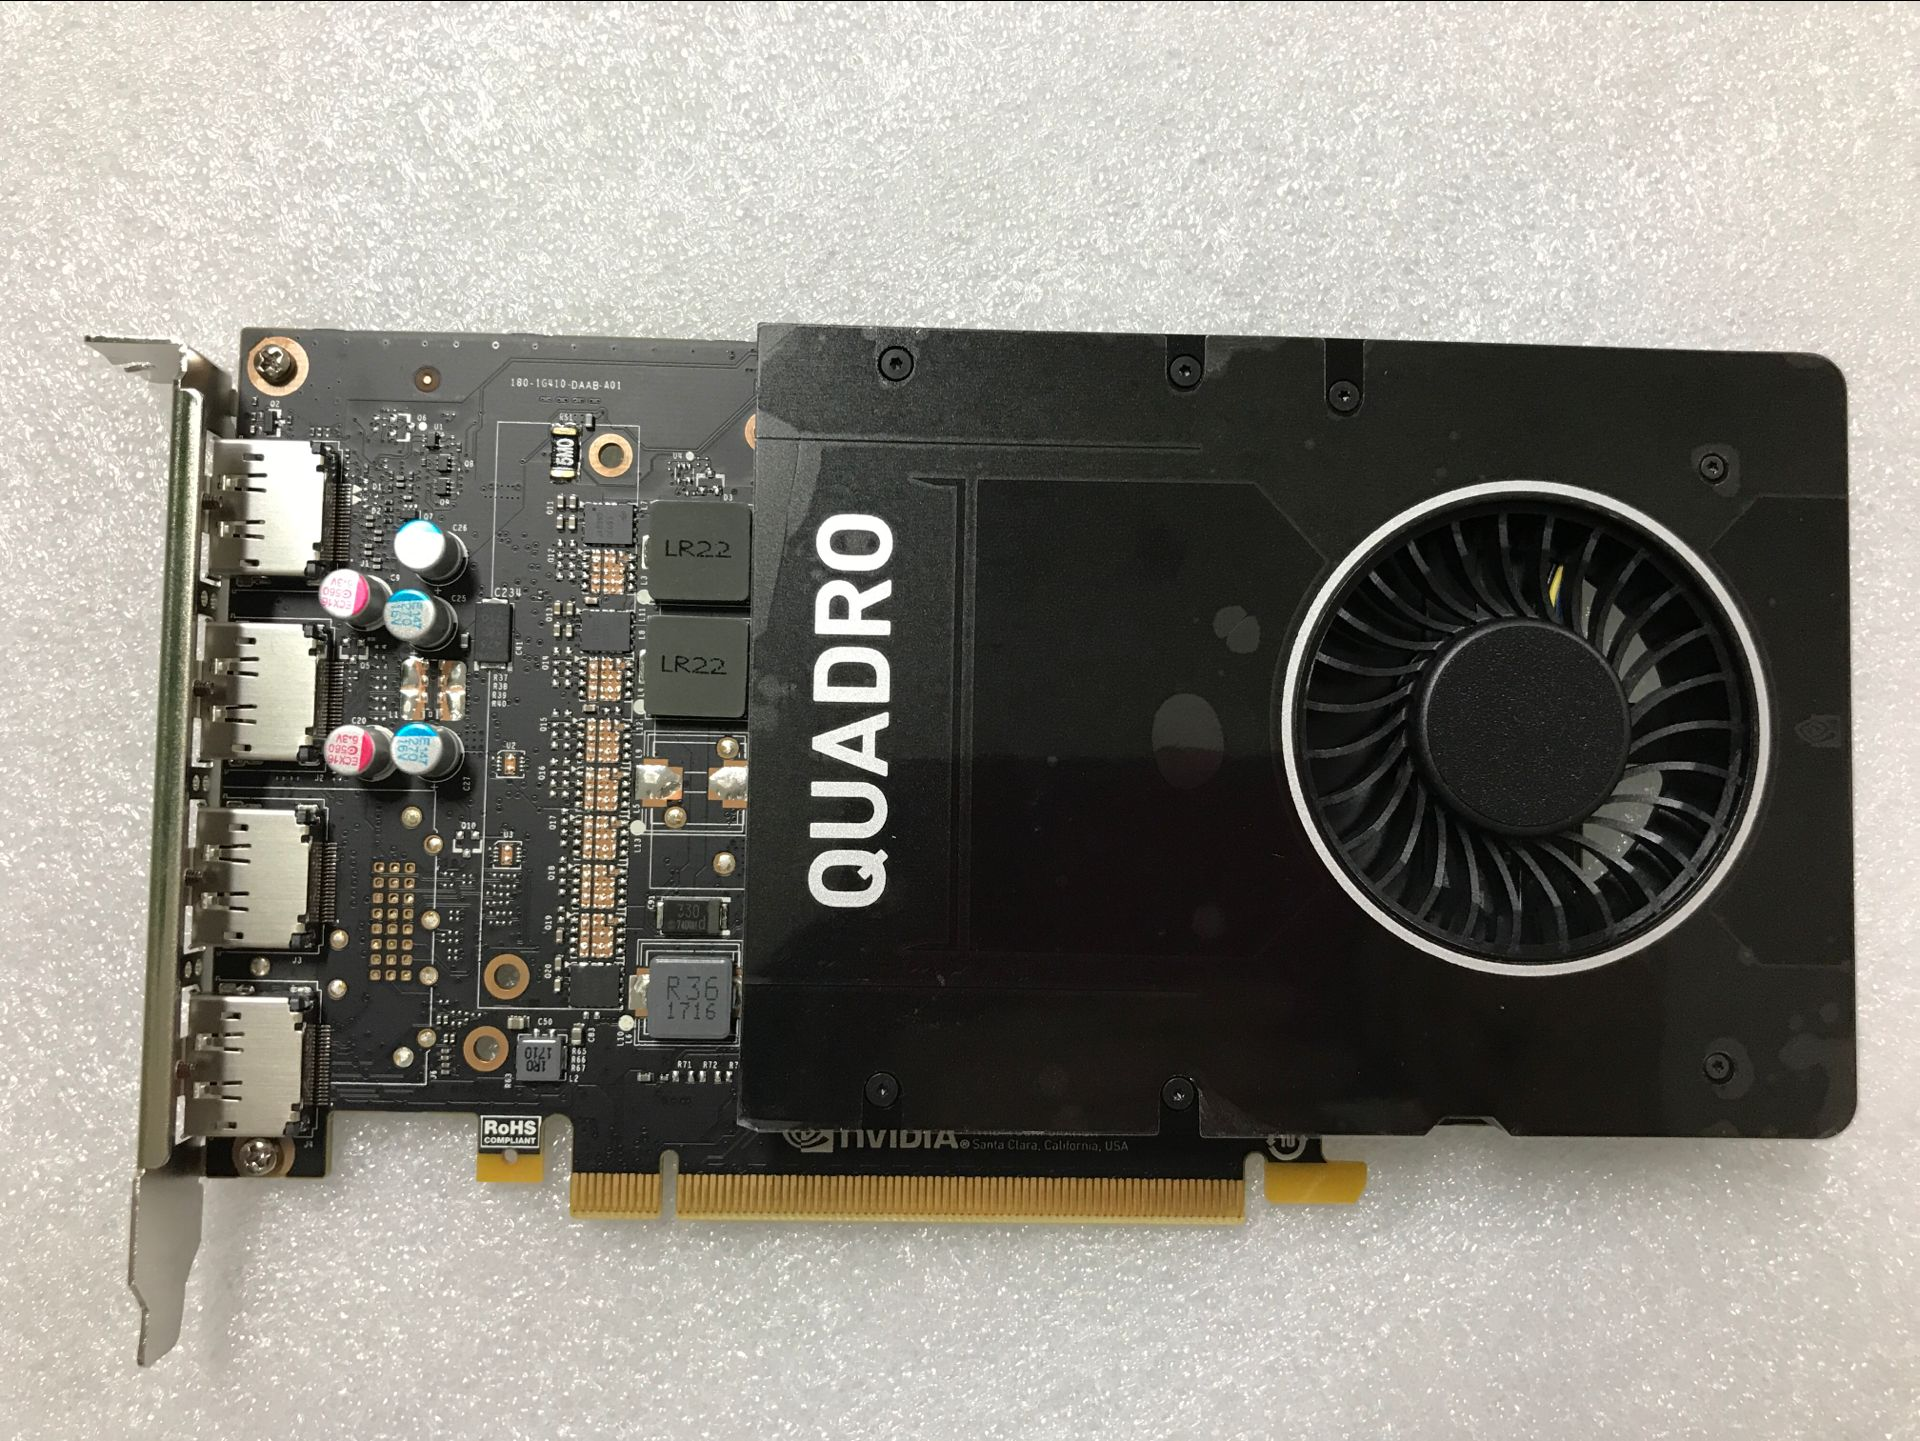 Quadro P2000 5G  Design 3D Modeling Rendering Workstation Professional Graphics Card, Used Original